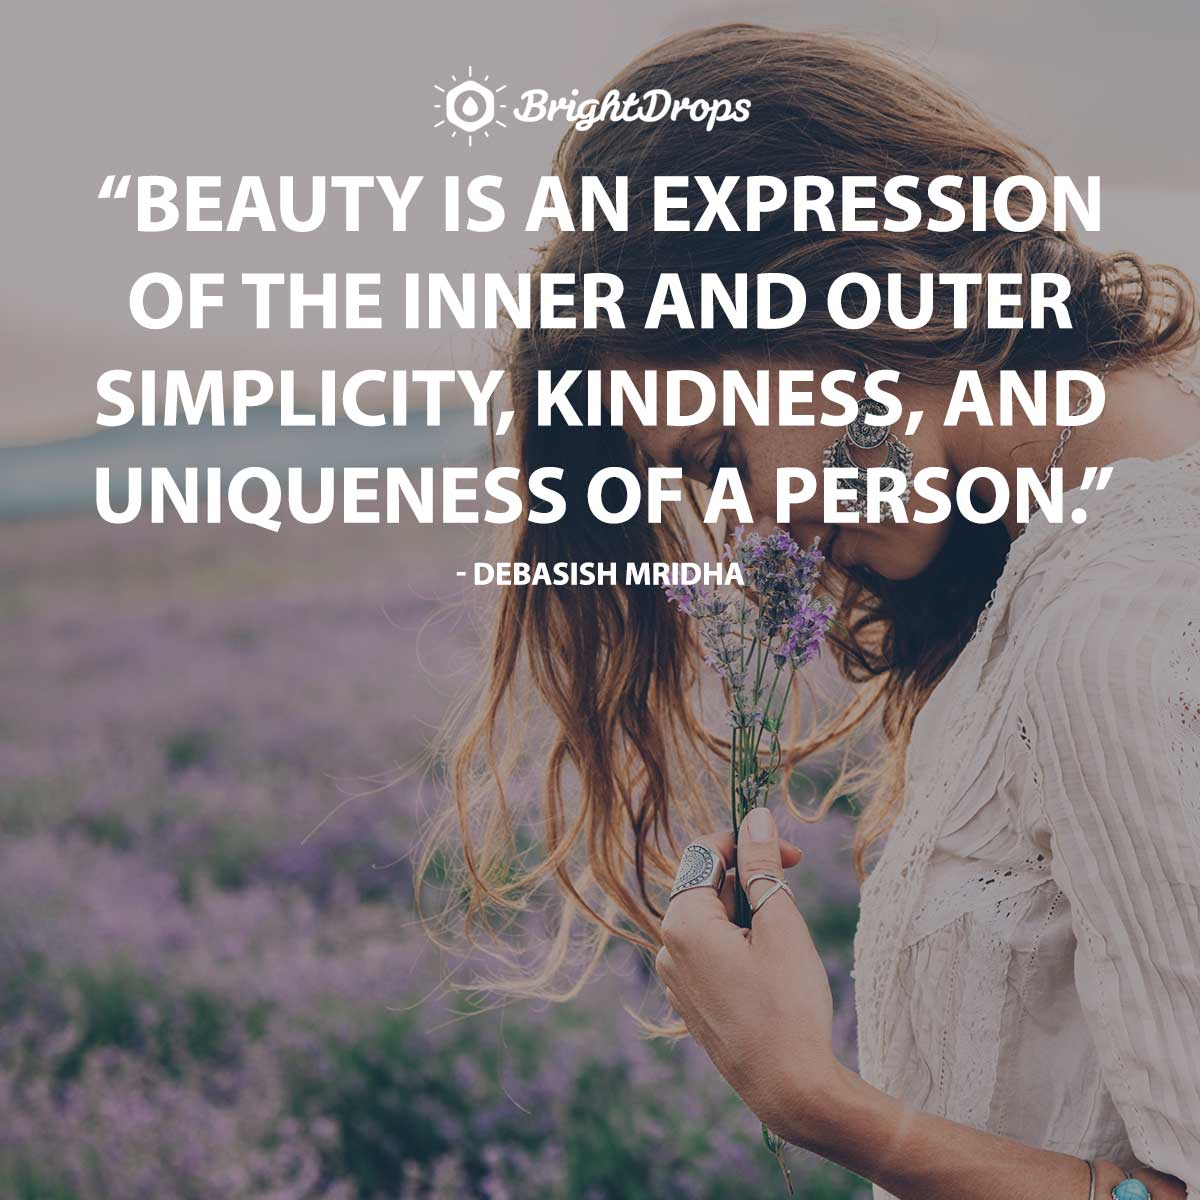 Beauty is an expression of the inner and outer simplicity, kindness, and uniqueness of a person. - Debasish Mridha